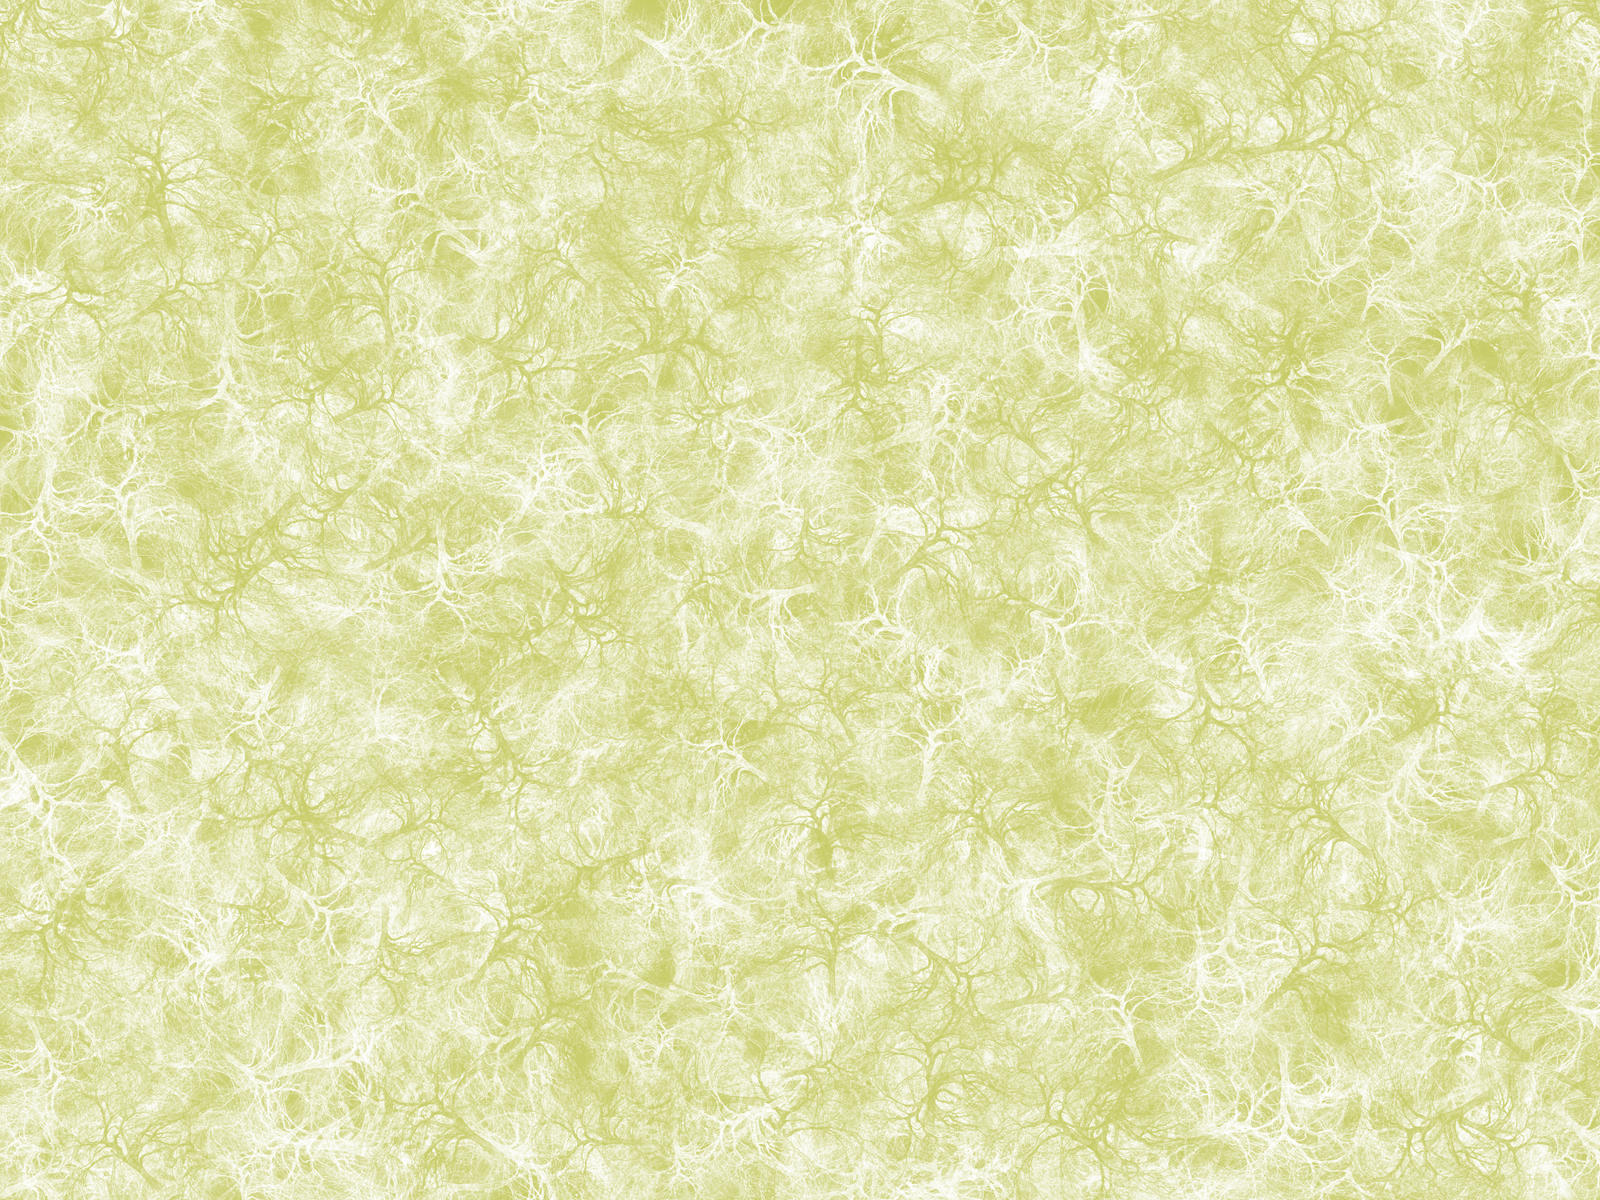 Muted Sage Green Tree Background Texture By DonnaMarie113 On